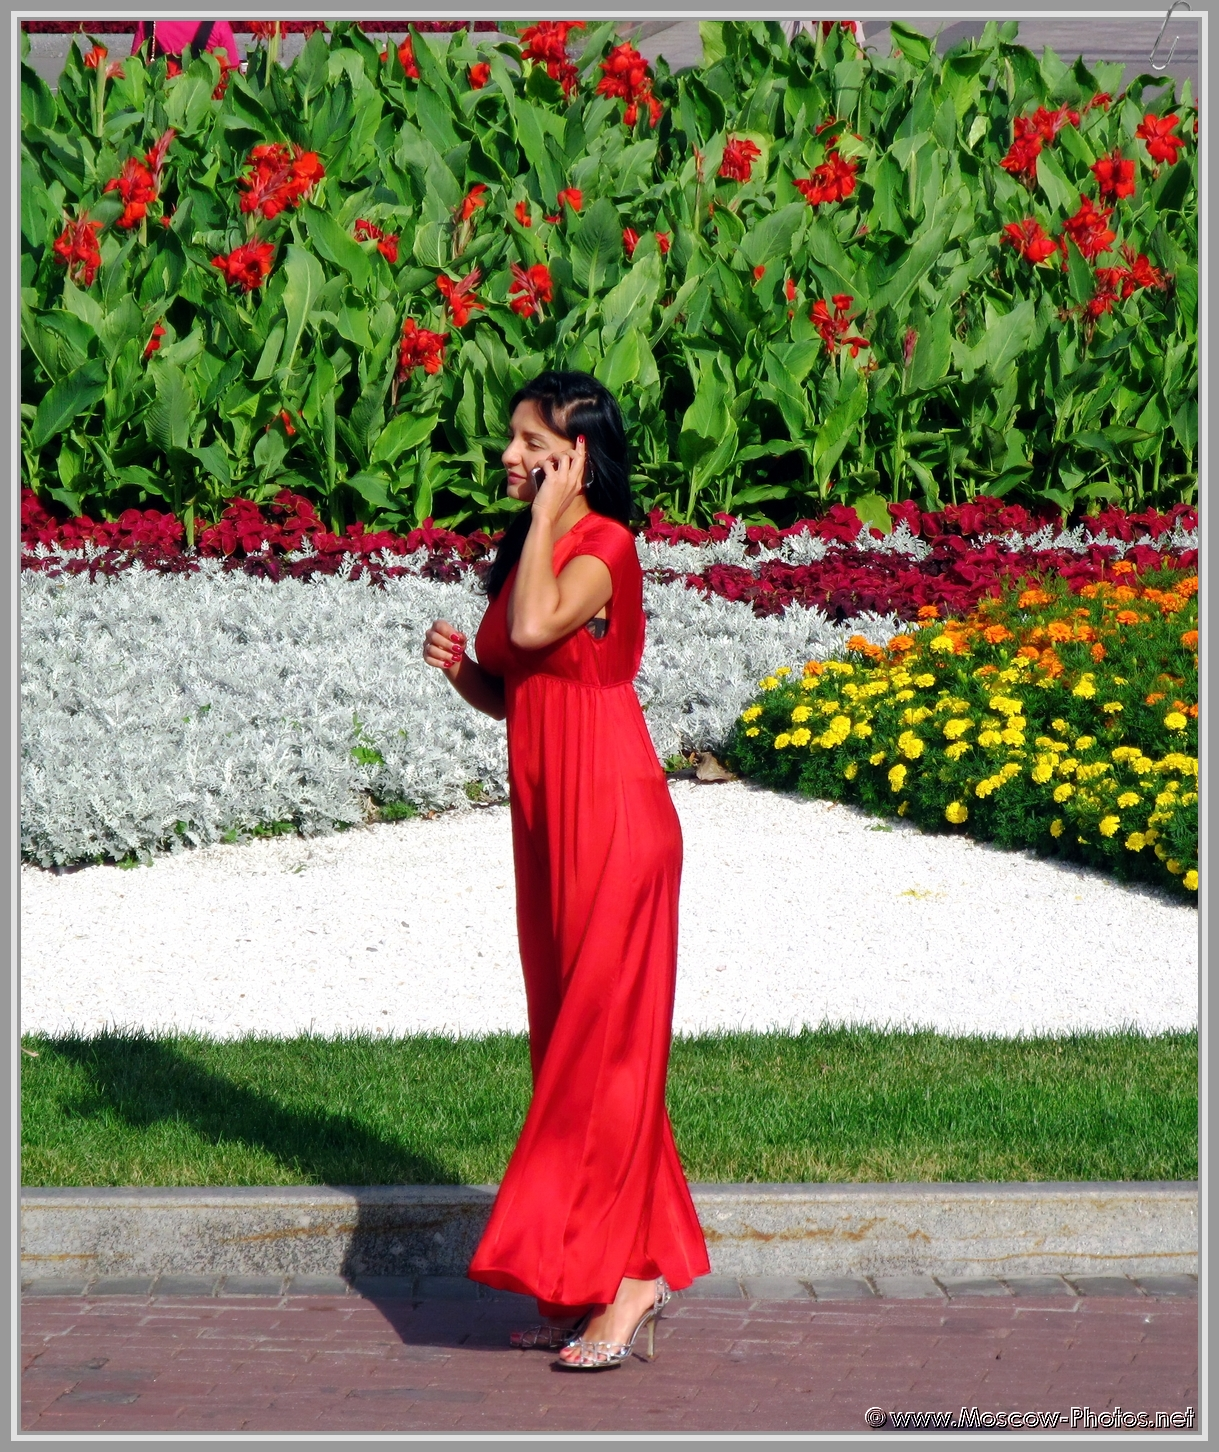 Elegant and businesslike against the background of a flower bed